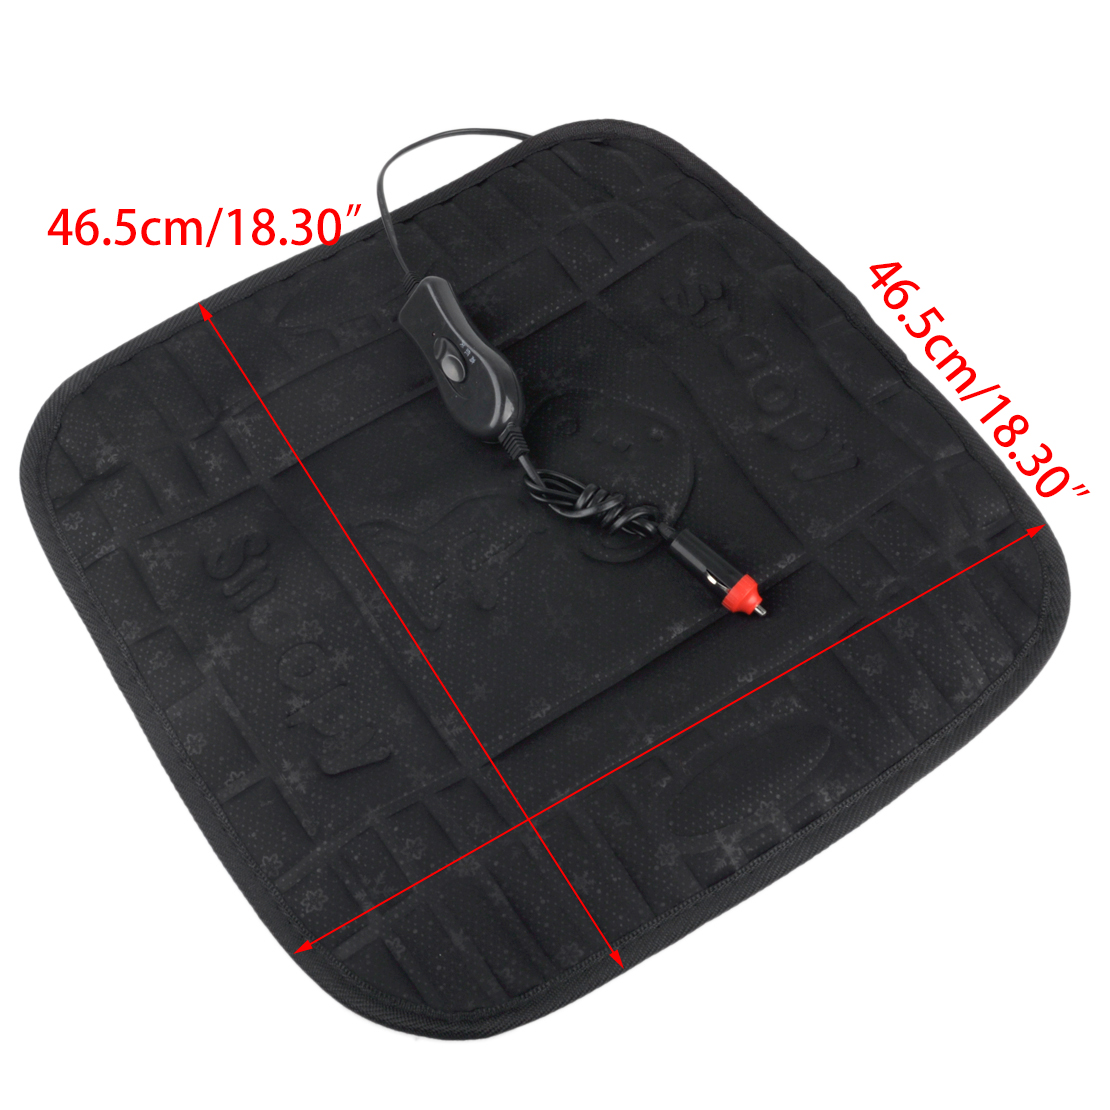 New 12V Car Heated Cushion Seat Hot Cover Auto Heat Heater